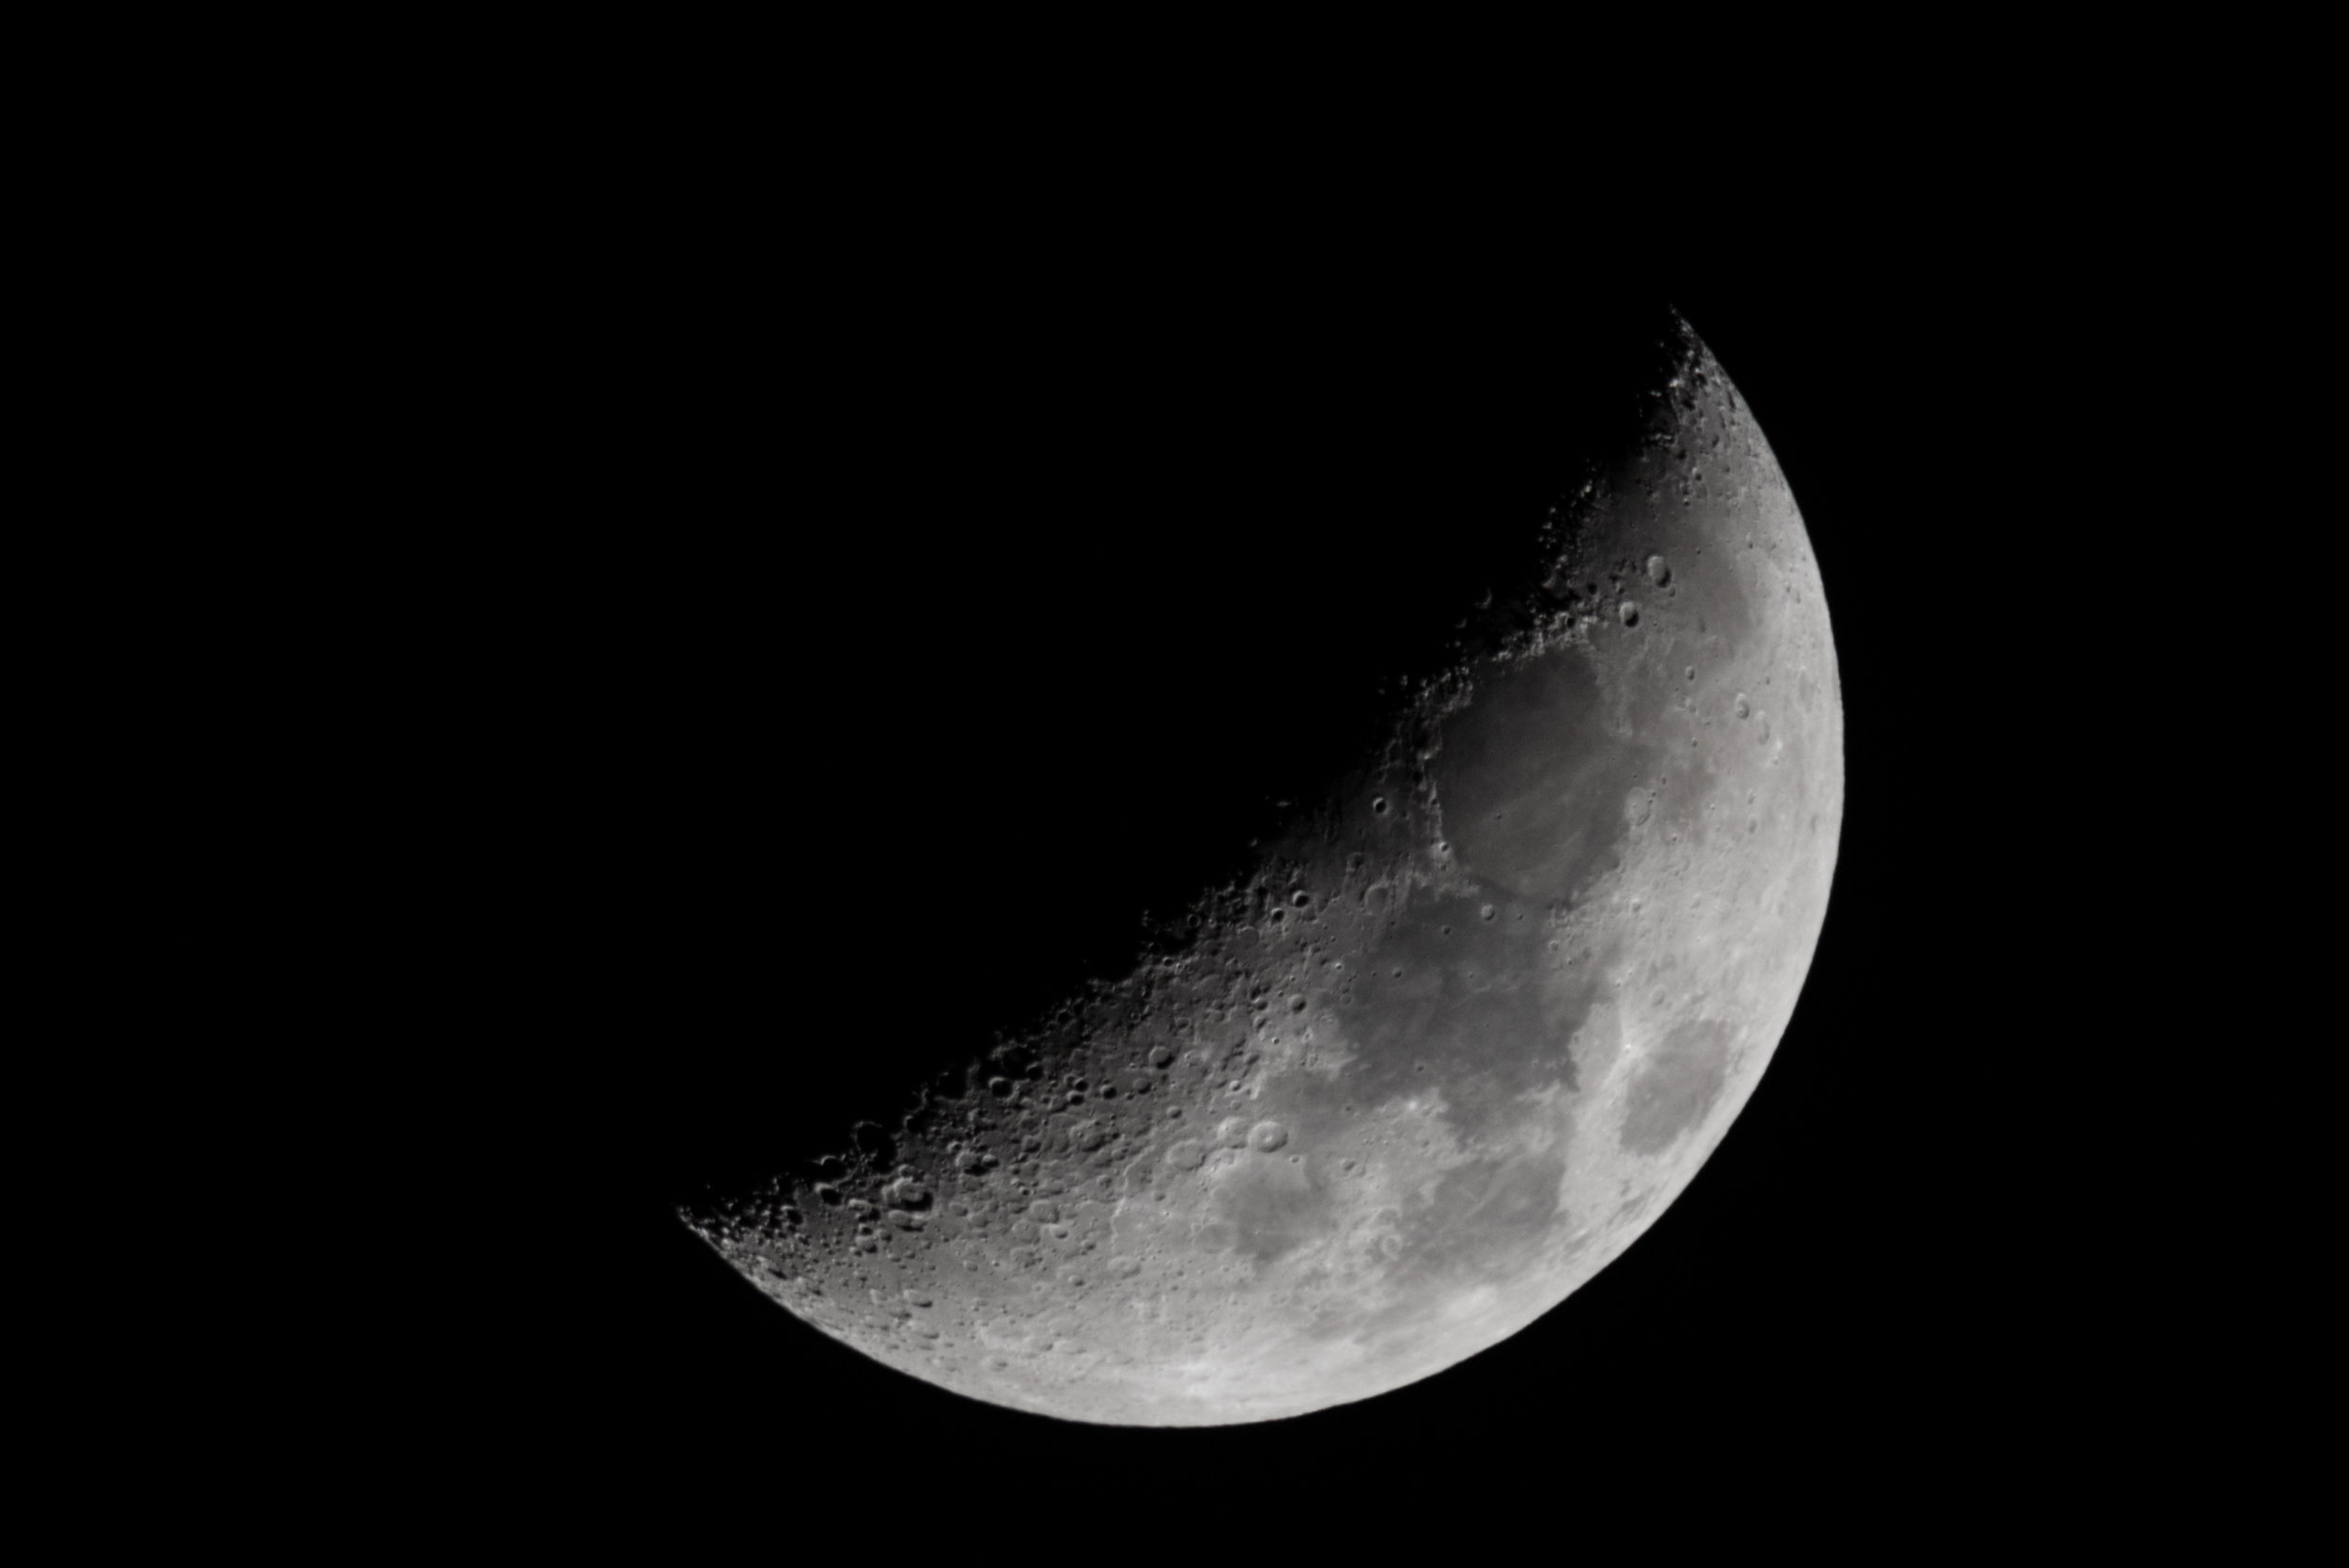 Waxing Crescent Moon - 04 Jan 2017 18:51:00 EST Nikon D750  ISO 320 1200mm f/10 1/100 sec.